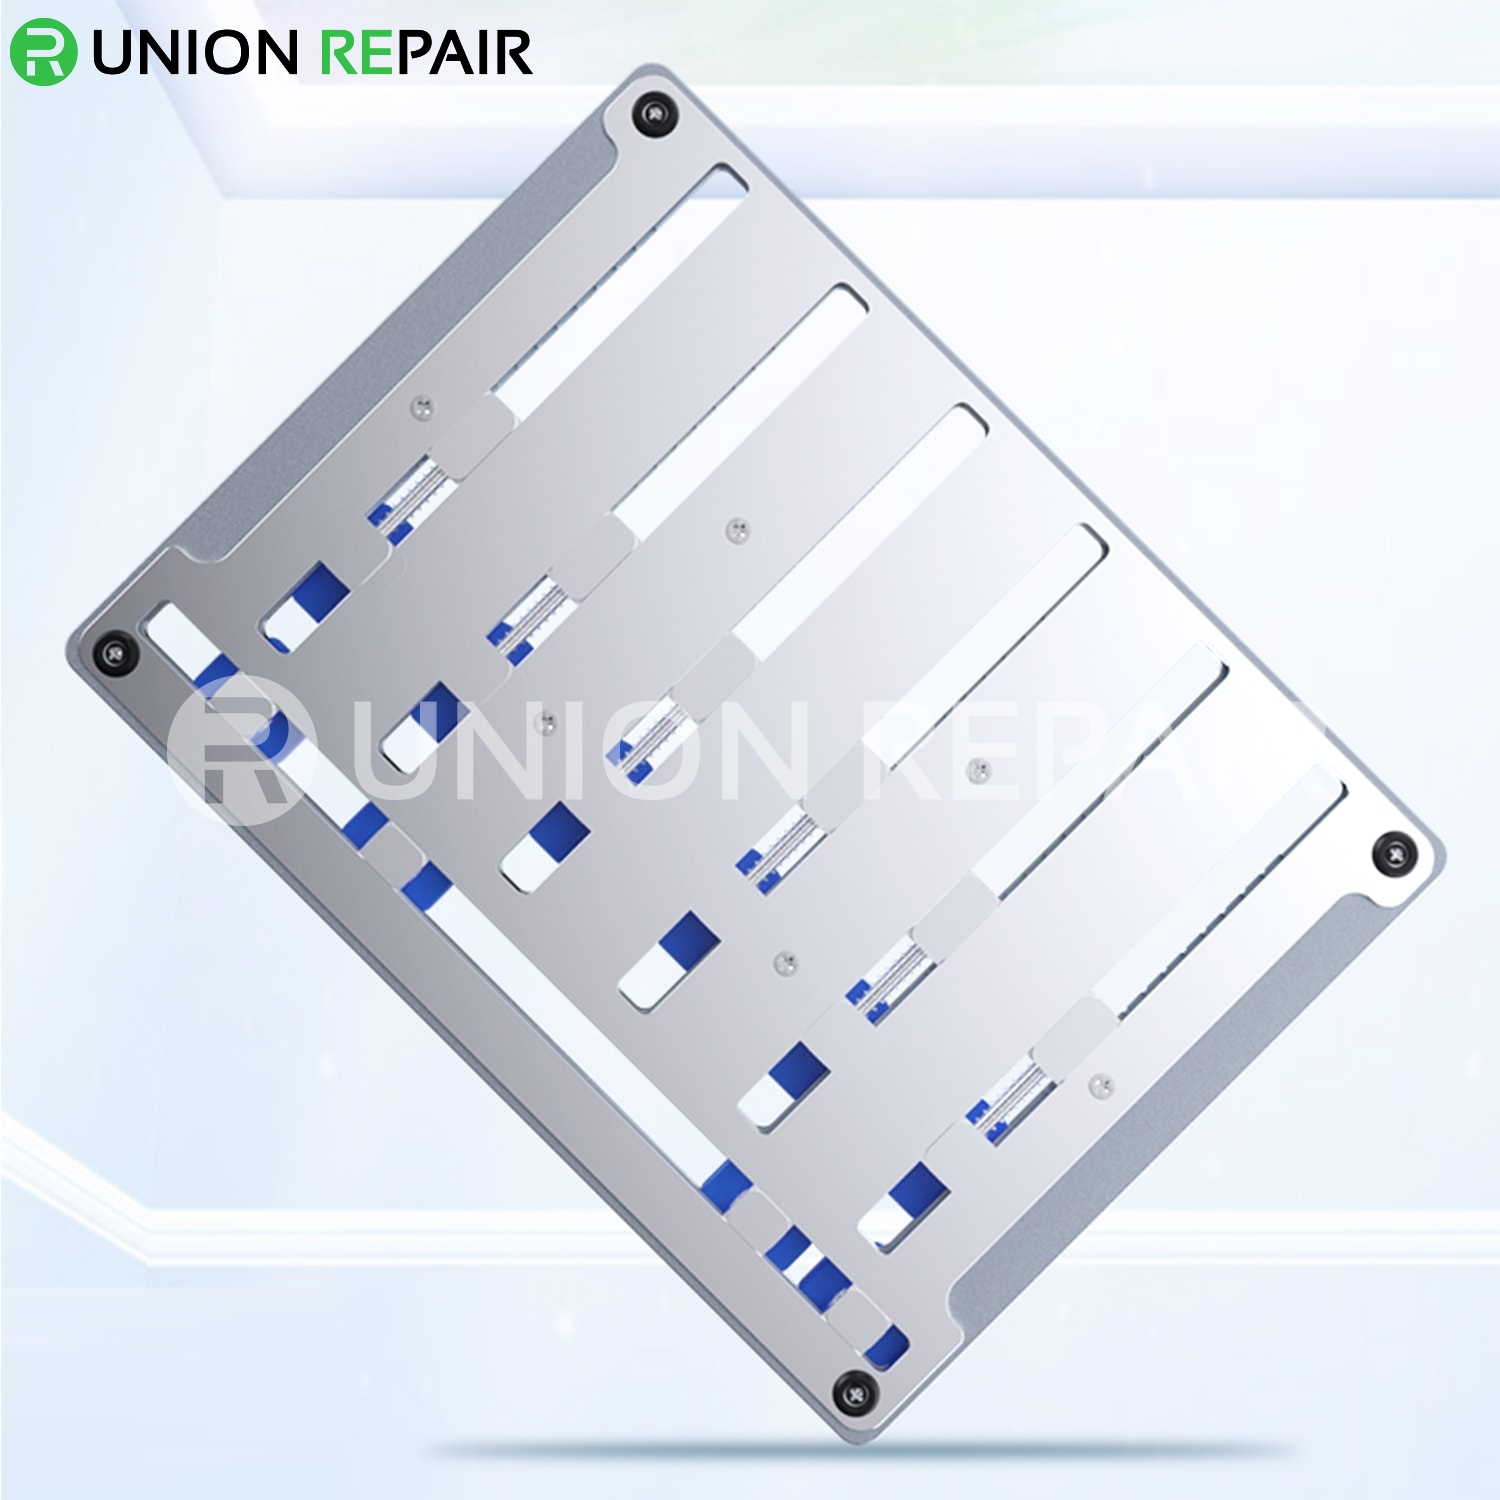 MiJing T26 Universal Six-Axis Multifunction PCB Board Holder Fixture